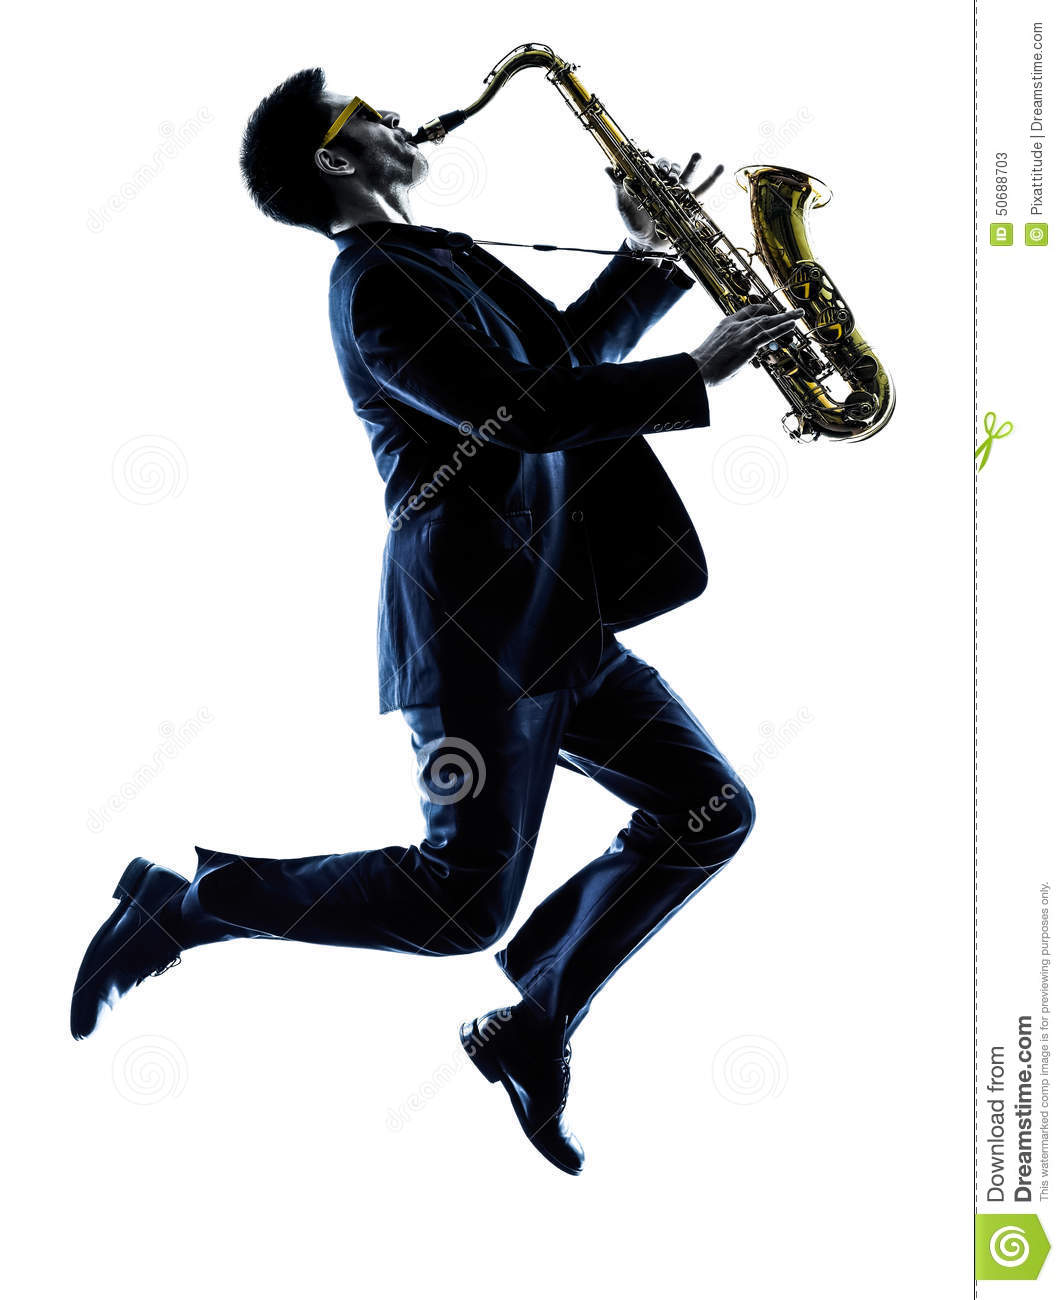 Man Saxophonist Playing Saxophone Silhouette Stock Image ...